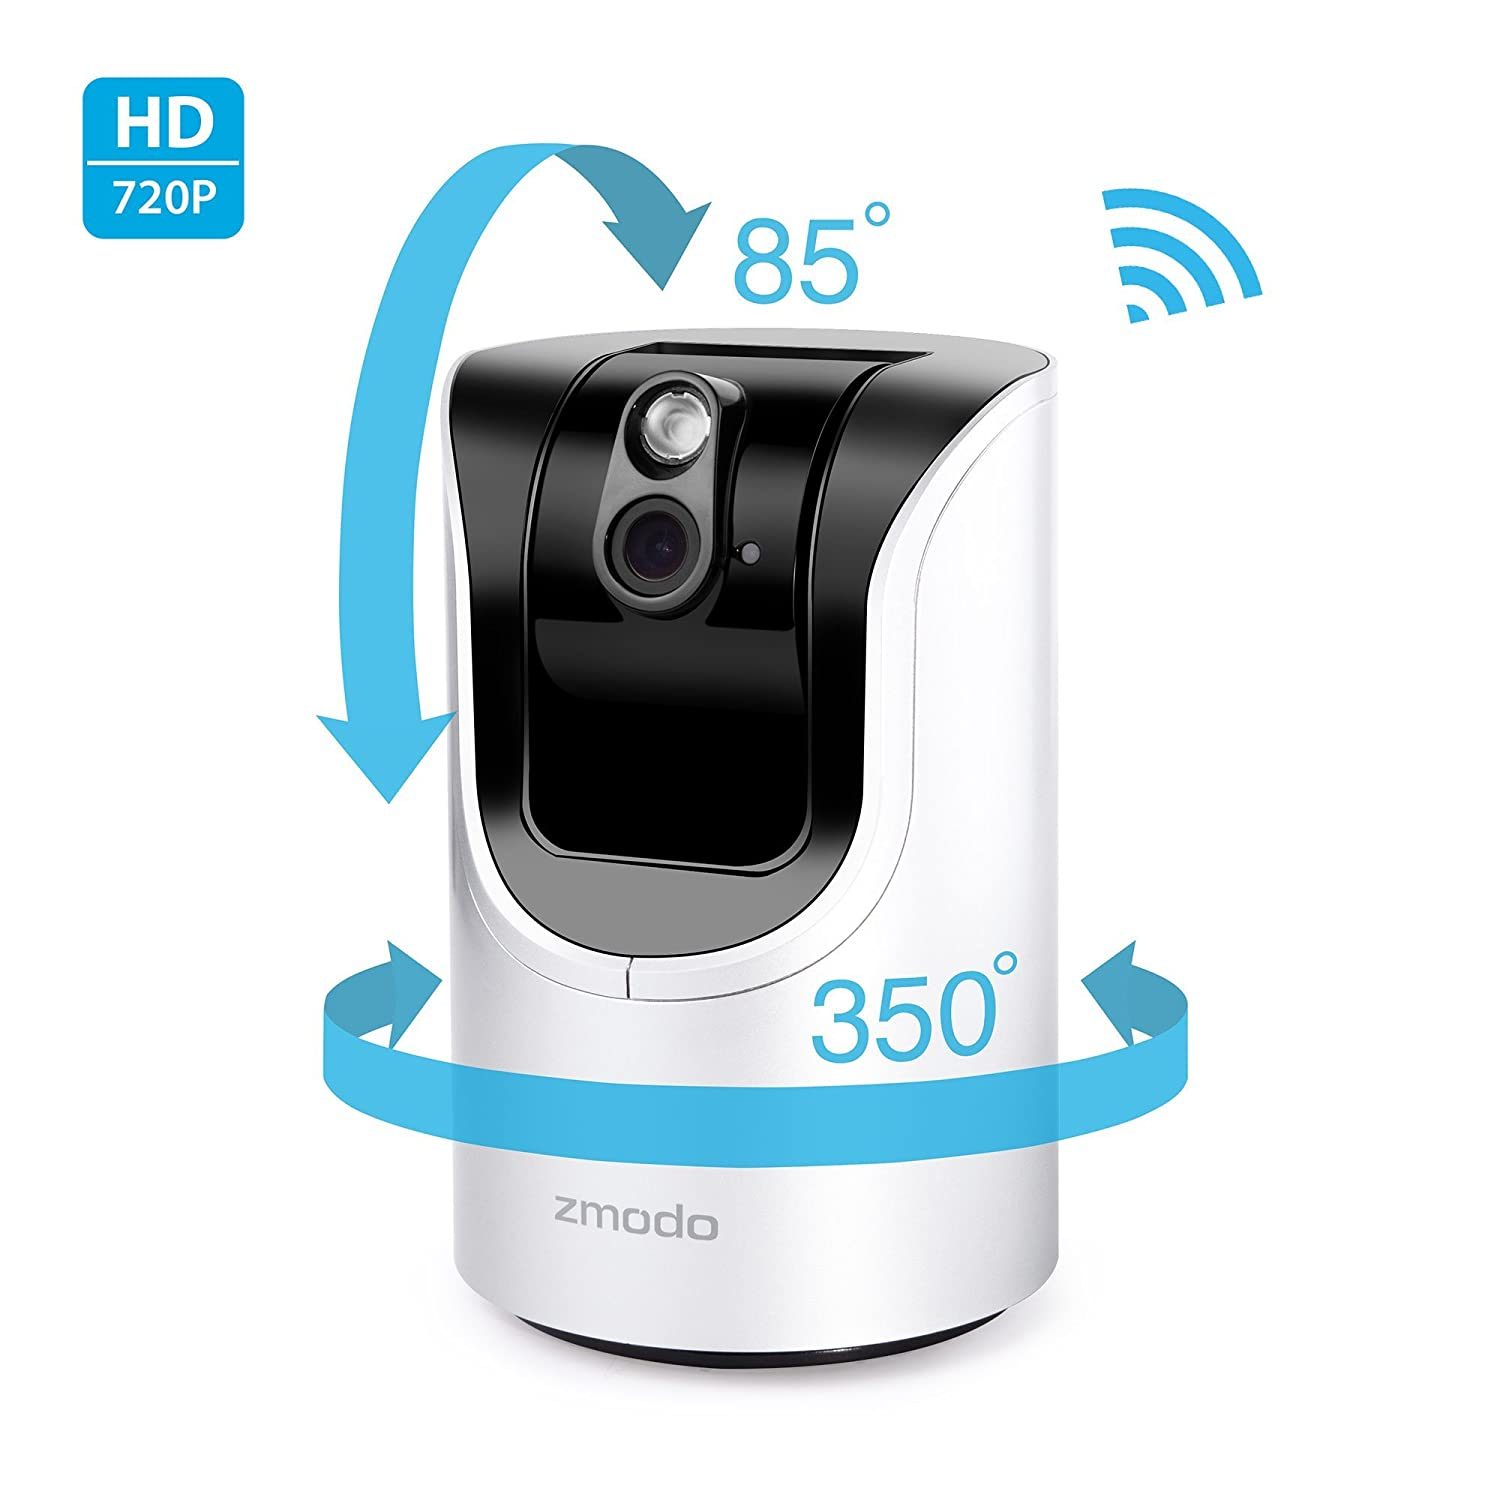 Zmodo 1.0 Megapixel 1280 x 720 Pan & Tilt Smart Wireless IP Network Security Camera Easy Remote Access Two-way Audio [並行輸入品] B01LYXXY64